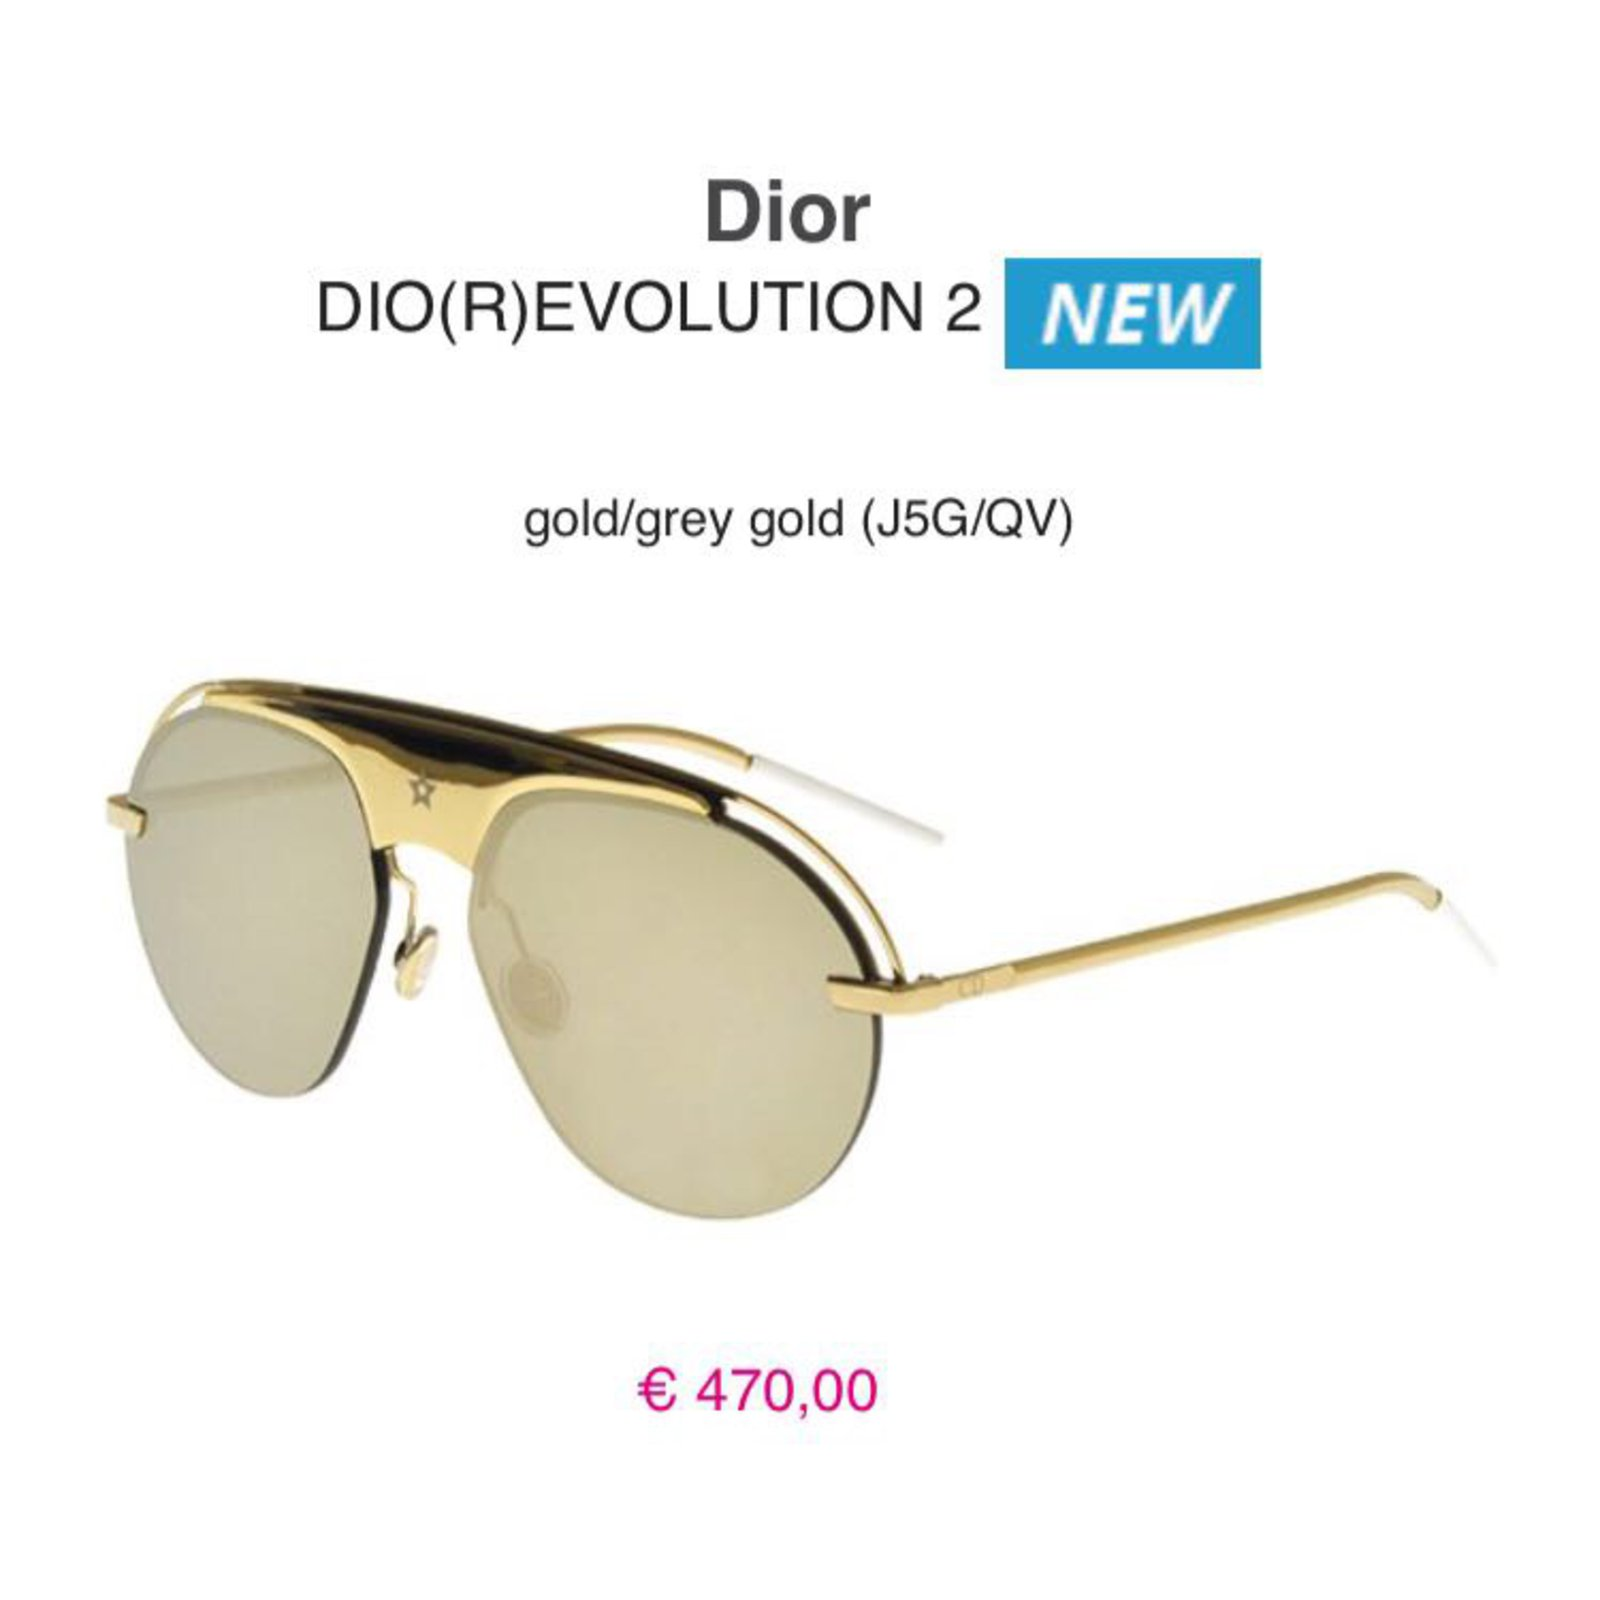 9384386ddd1 Facebook · Pin This. Christian Dior Dior revolution 2 Sunglasses Metal  Golden ref.45574